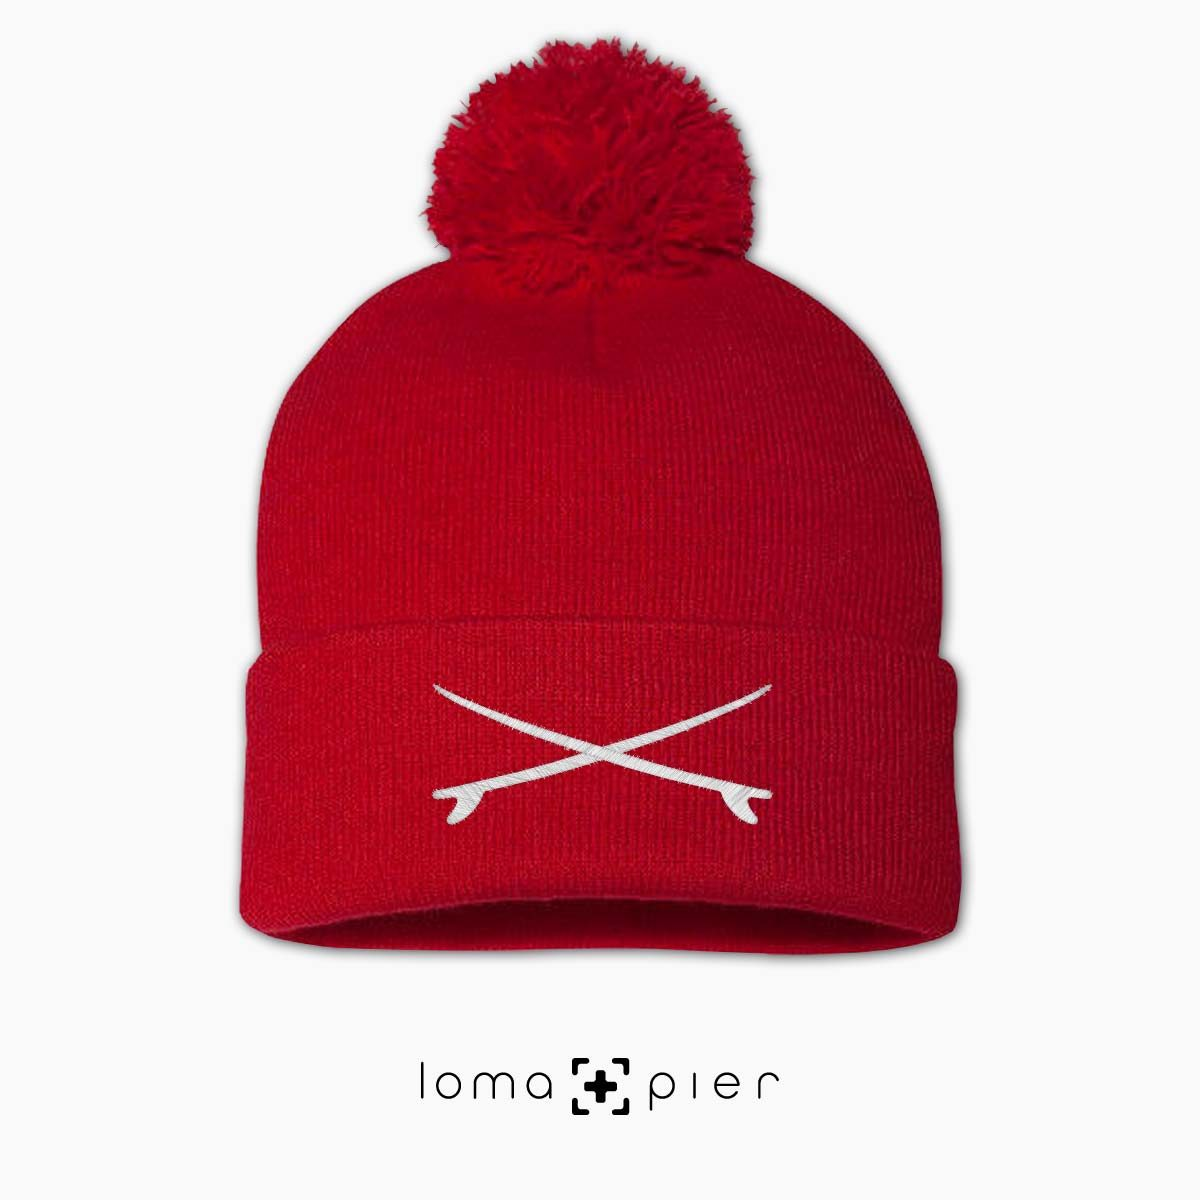 X MARKS THE SURF icon embroidered on a red pom pom beanie by loma+pier beanie store